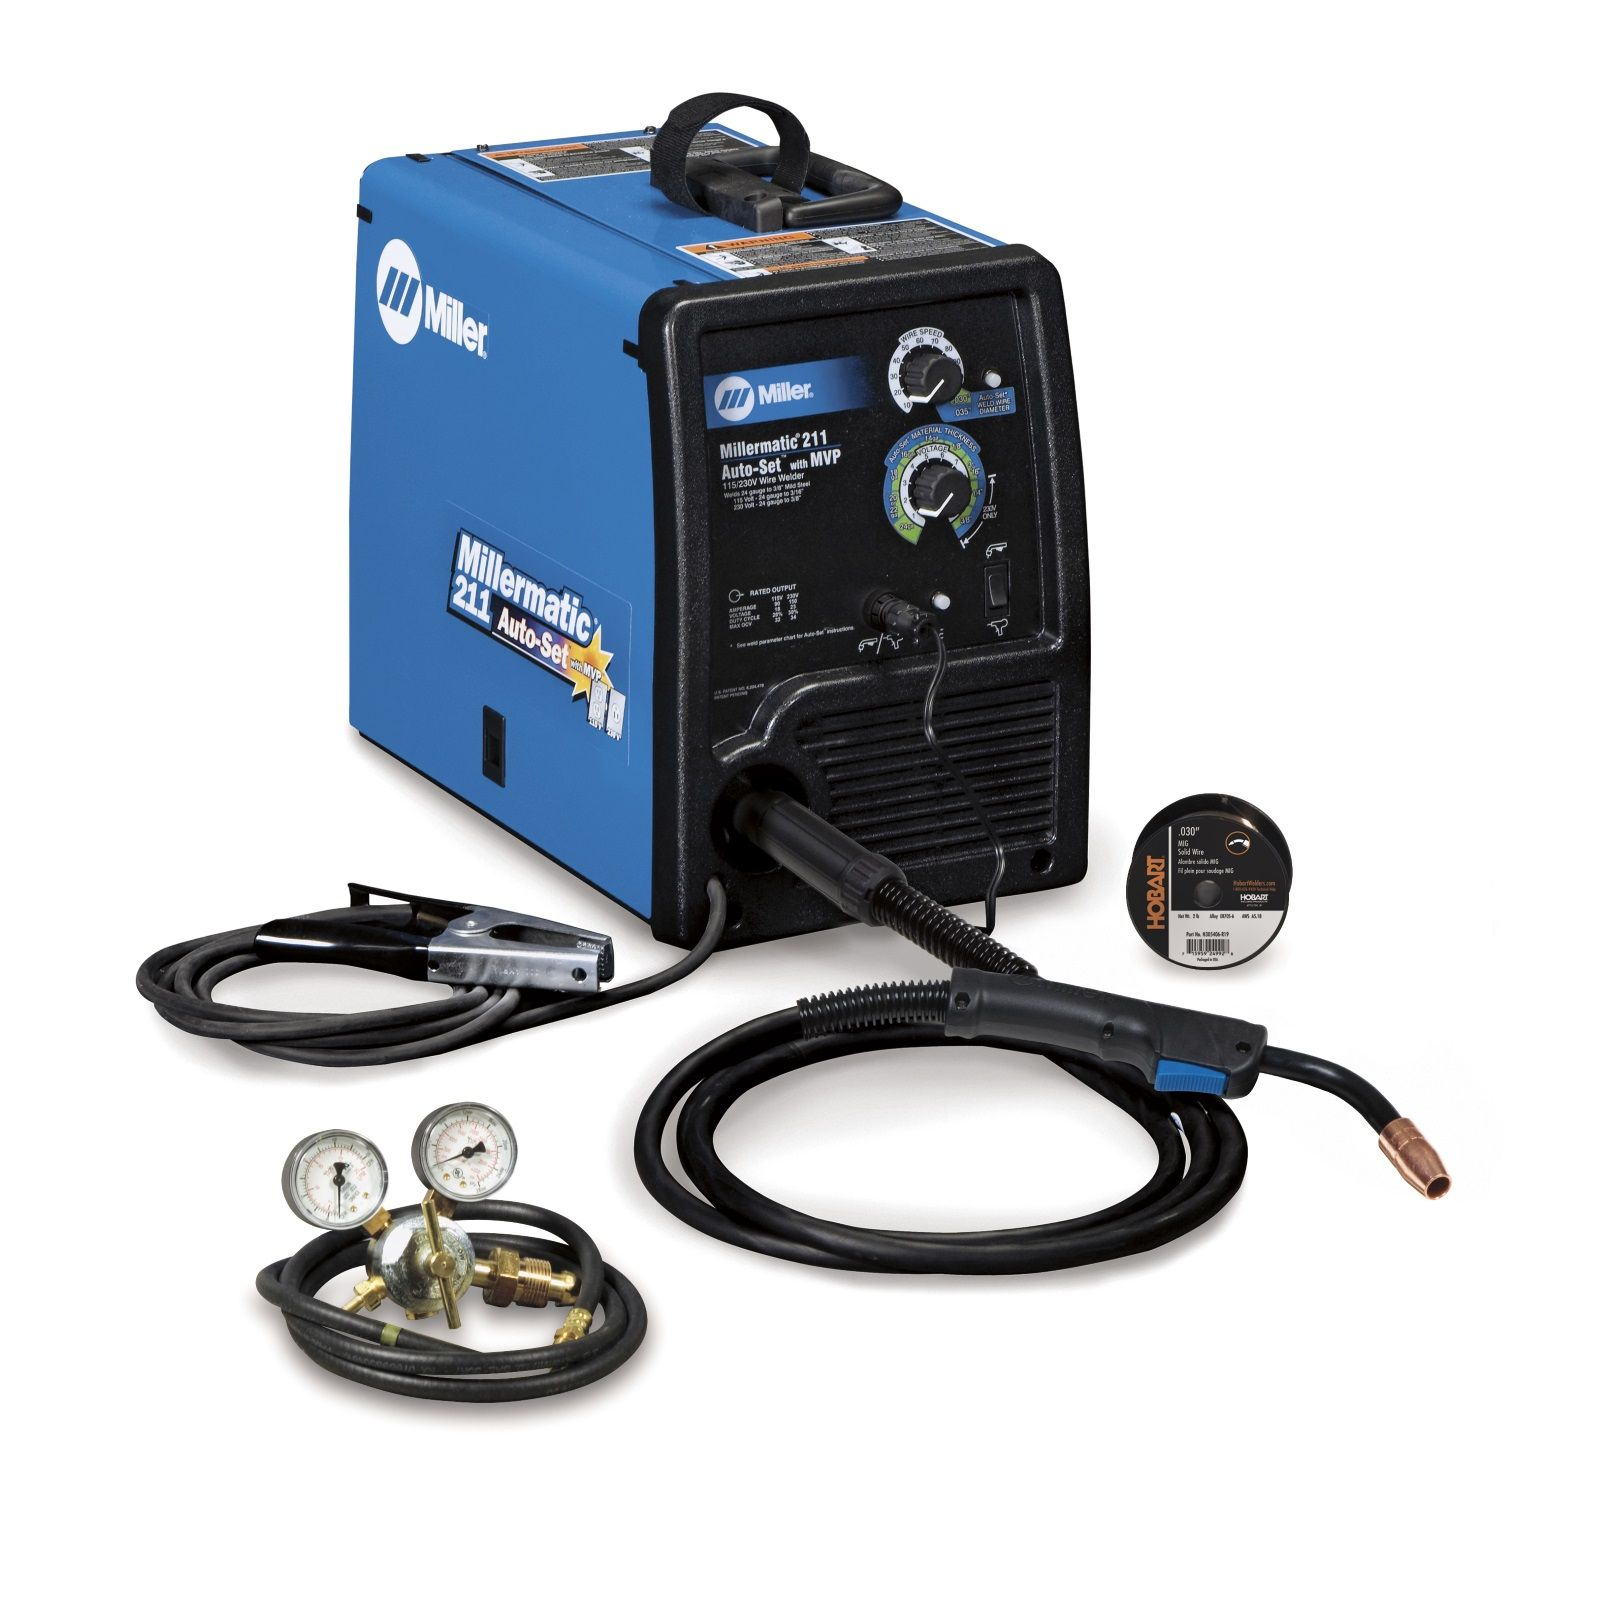 Miller Millermatic 211 MIG Welder with Auto-Set (907422)